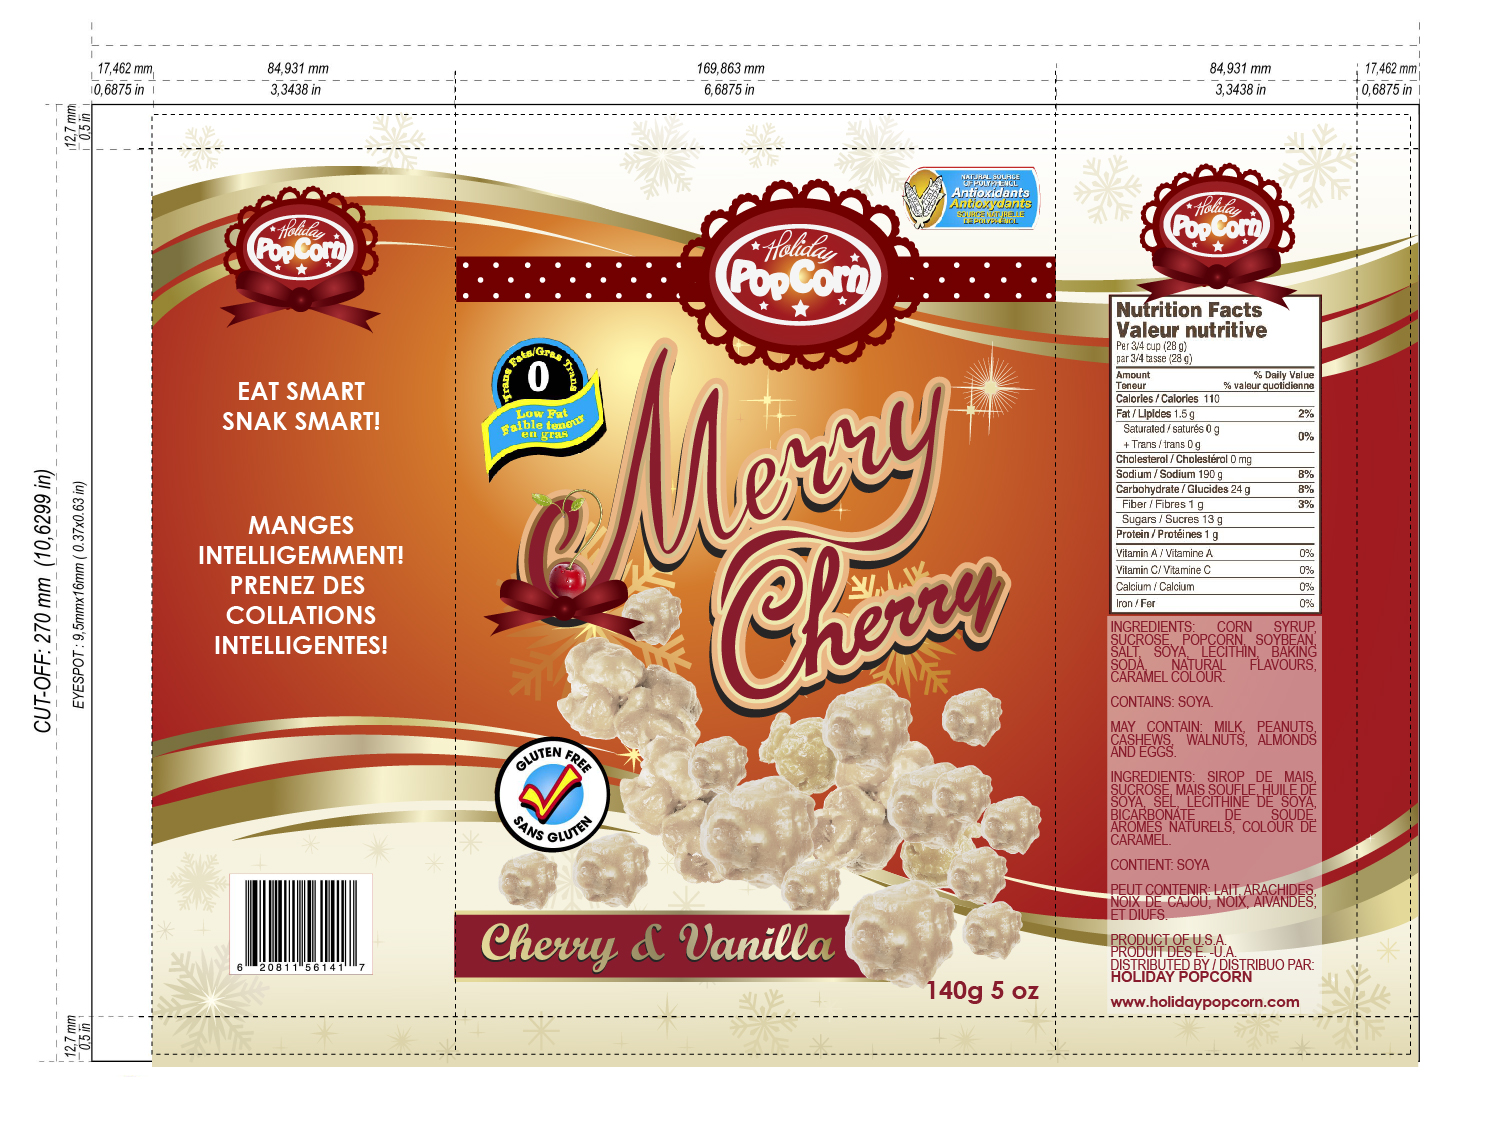 Packaging Design by lagalag - Entry No. 17 in the Packaging Design Contest Imaginative Packaging Design for Holiday Popcorn.